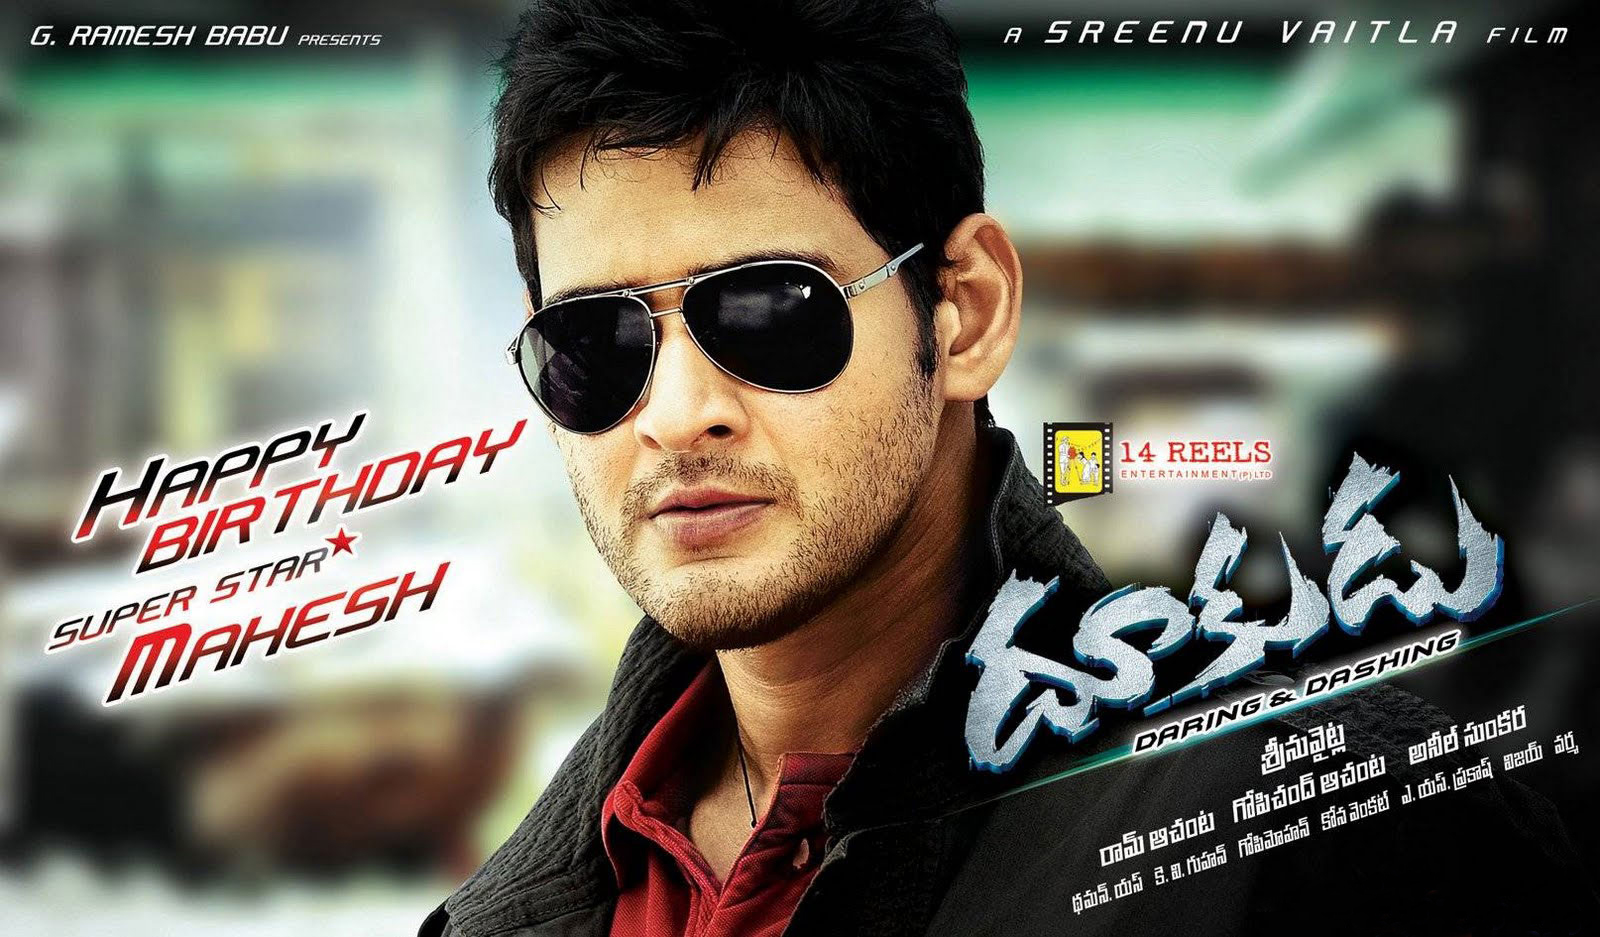 Mahesh Babu birthday, happy birthday mahesh babu, Prince mahesh babu Birthday, superstar mahesh babu birthday